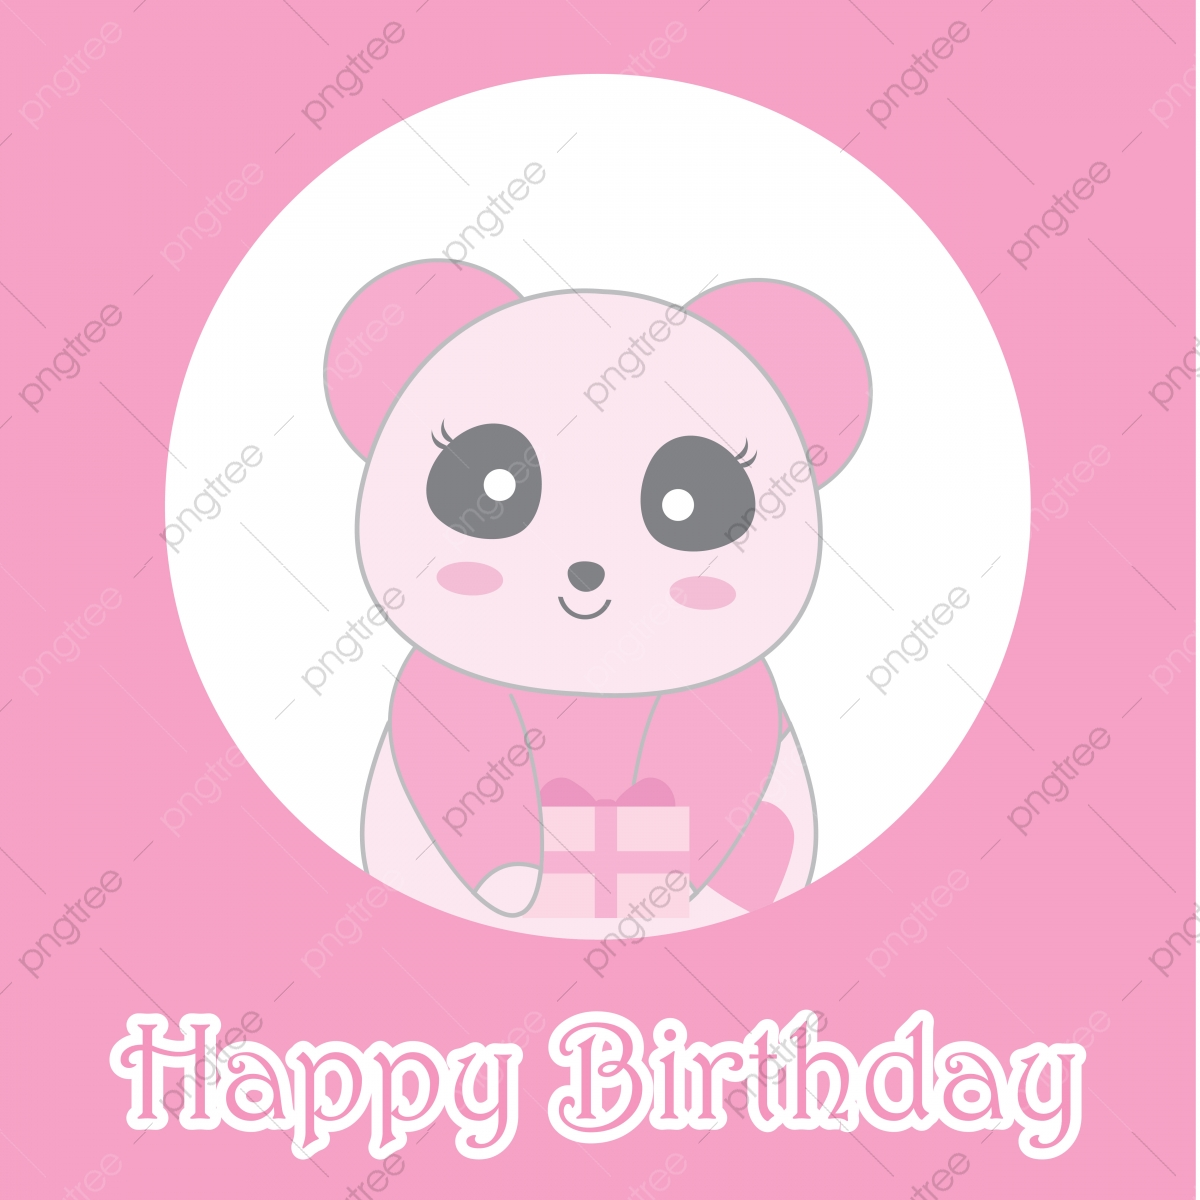 Cute Pink Panda On Circle Frame Cartoon Illustration For